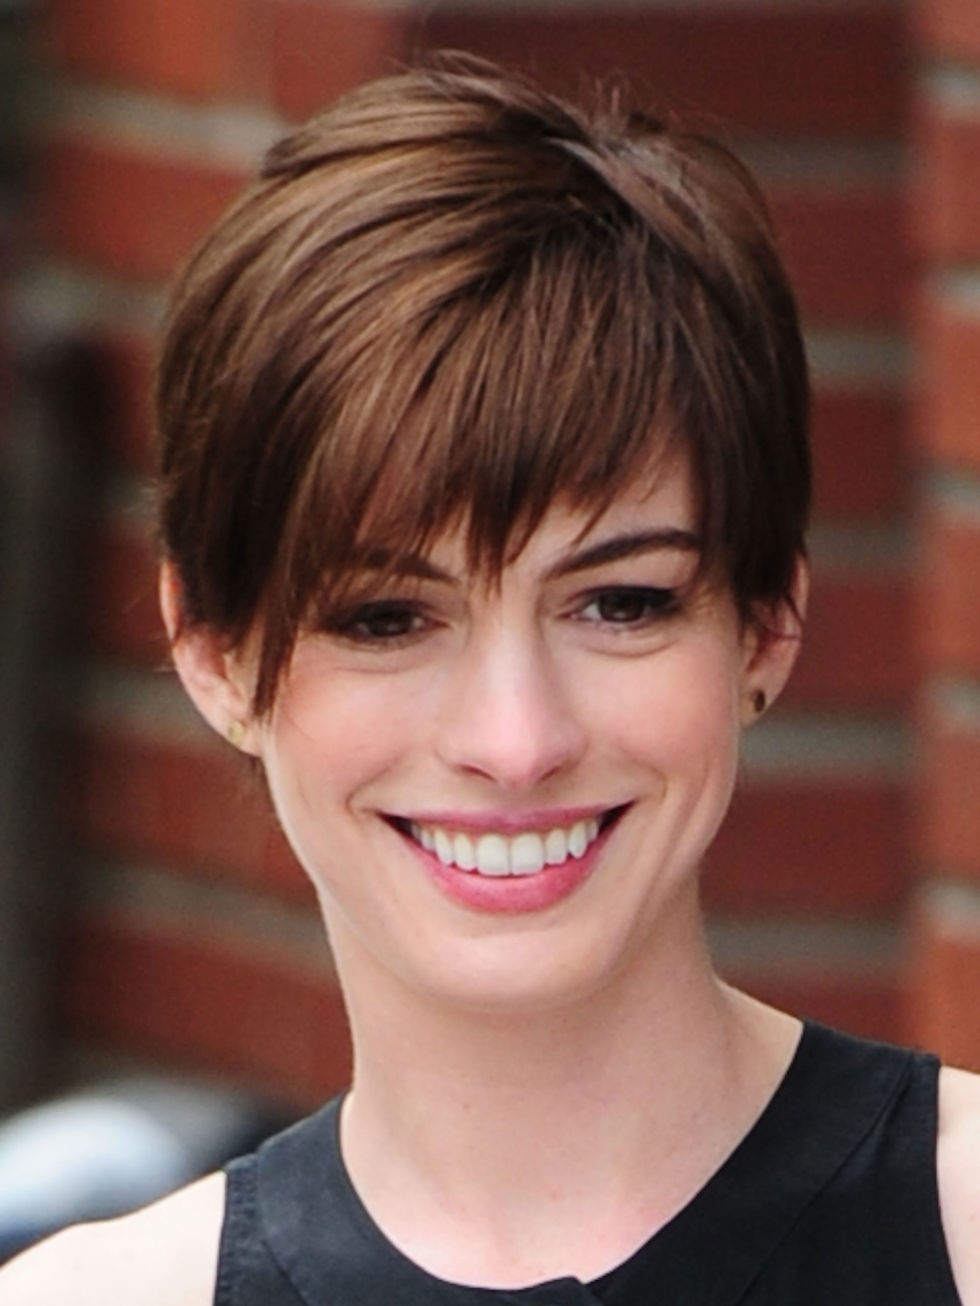 Marvelous Growing Out Short Hair Hairstyles For Growing Out Hair Short Hairstyles Gunalazisus